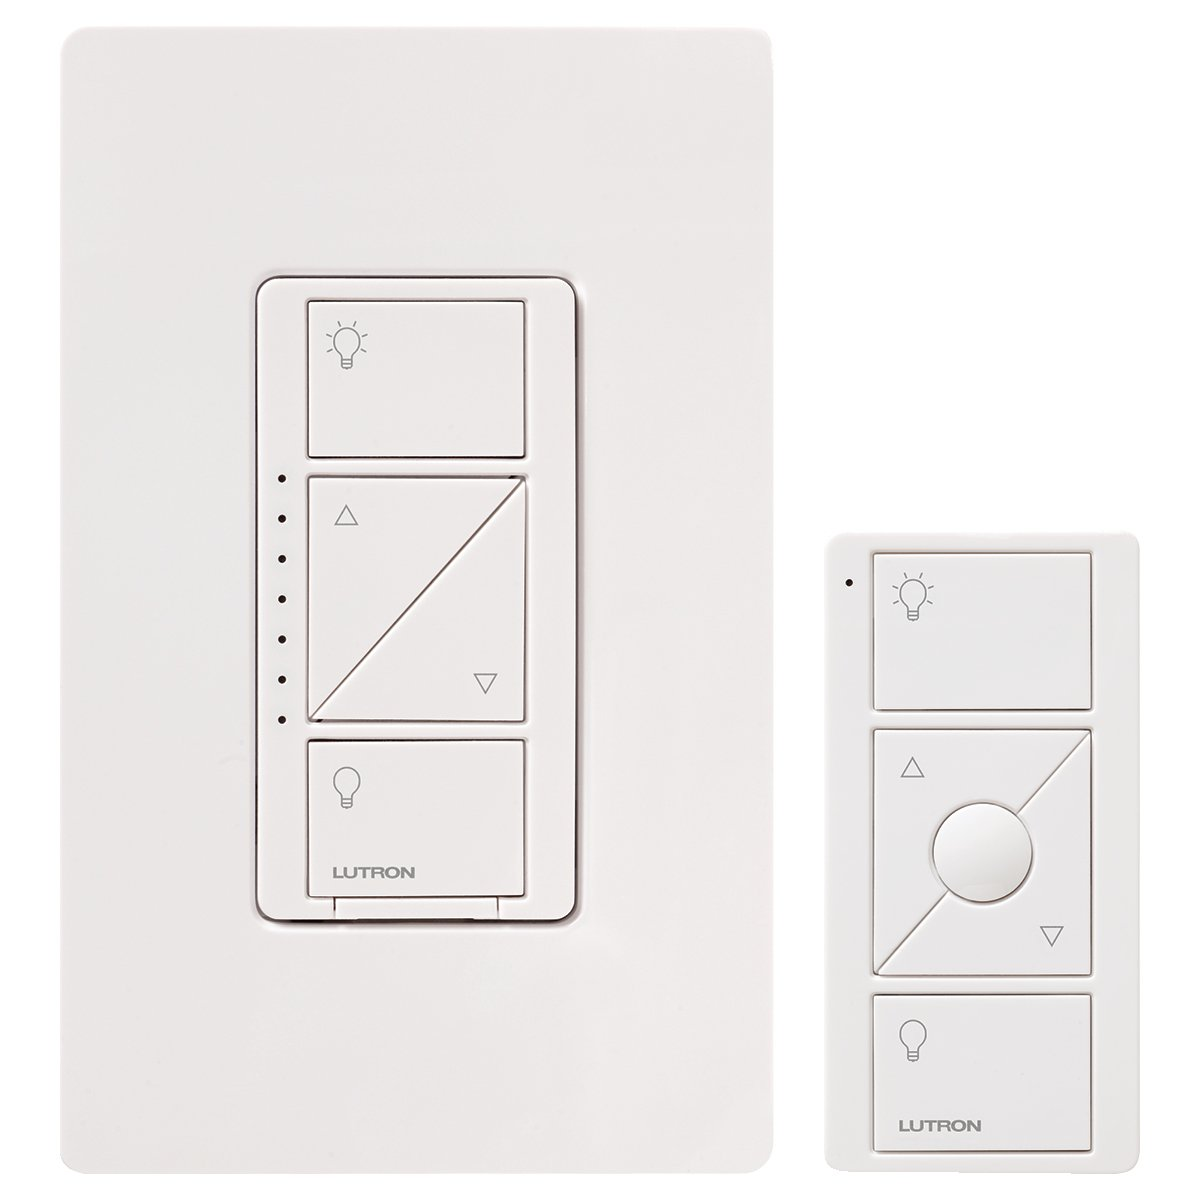 Lutron Caseta Wireless Smart Lighting Dimmer Switch And Remote Kit Light 3 Way For Wall Ceiling Lights P Pkg1w Wh C White Works With Alexa Switches